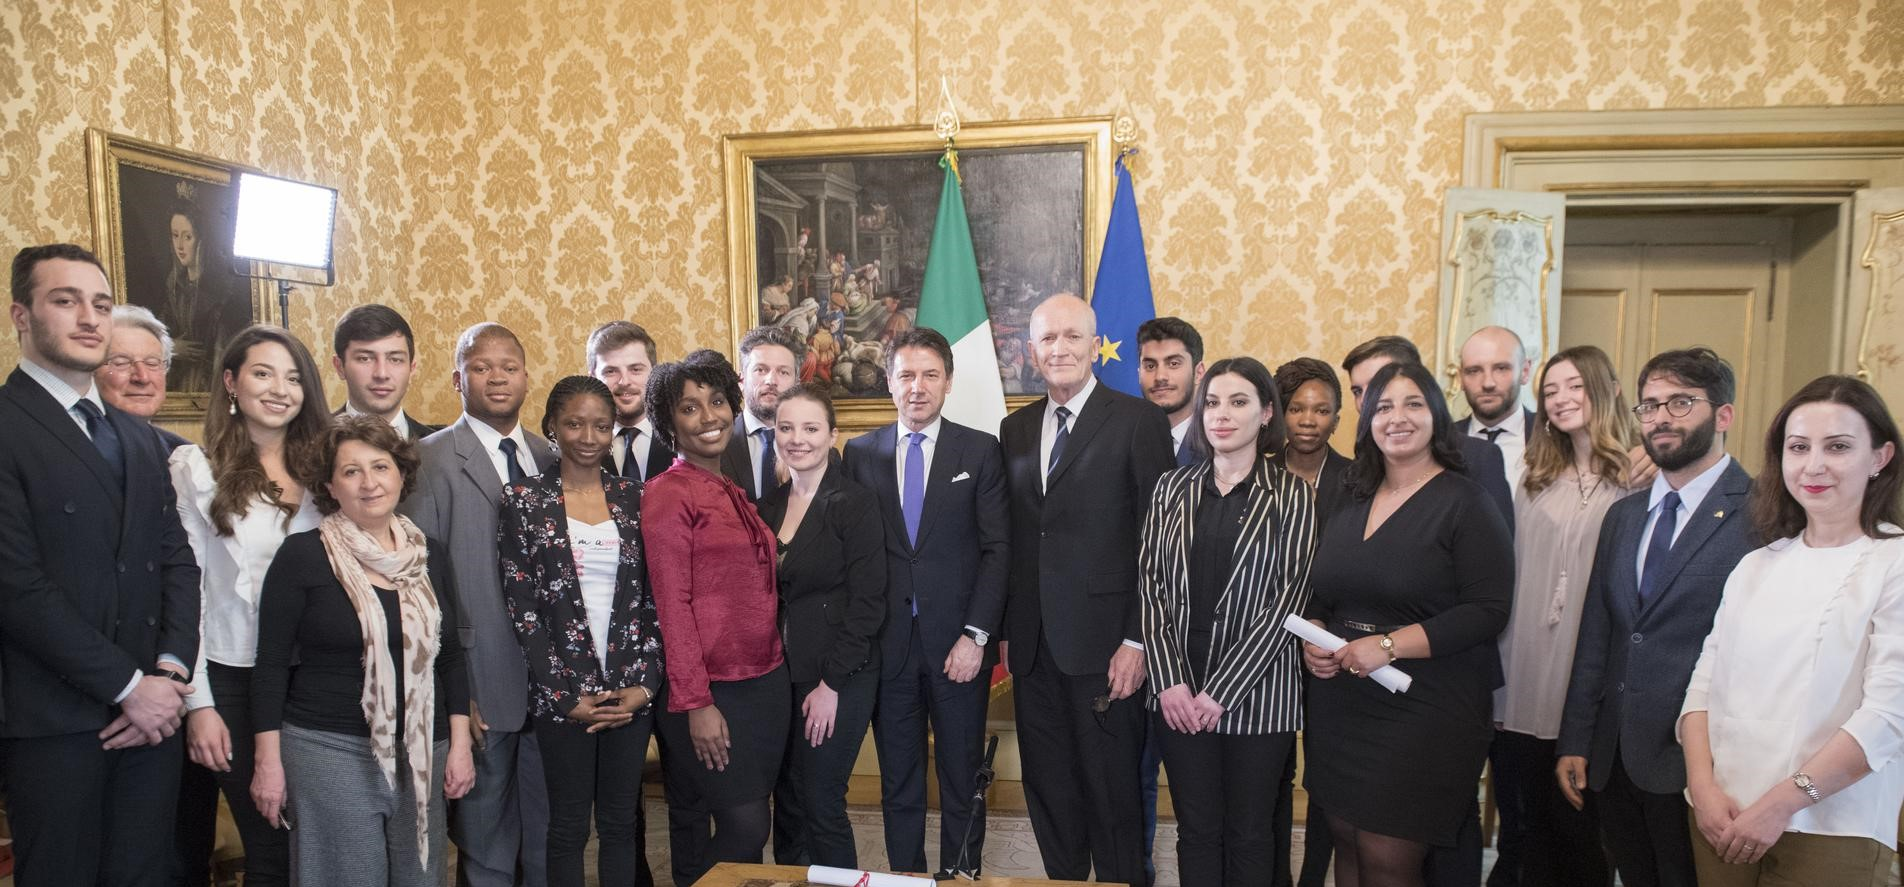 Leaders for Peace, il premier Conte in visita a Rondine per il sostegno dell'Italia